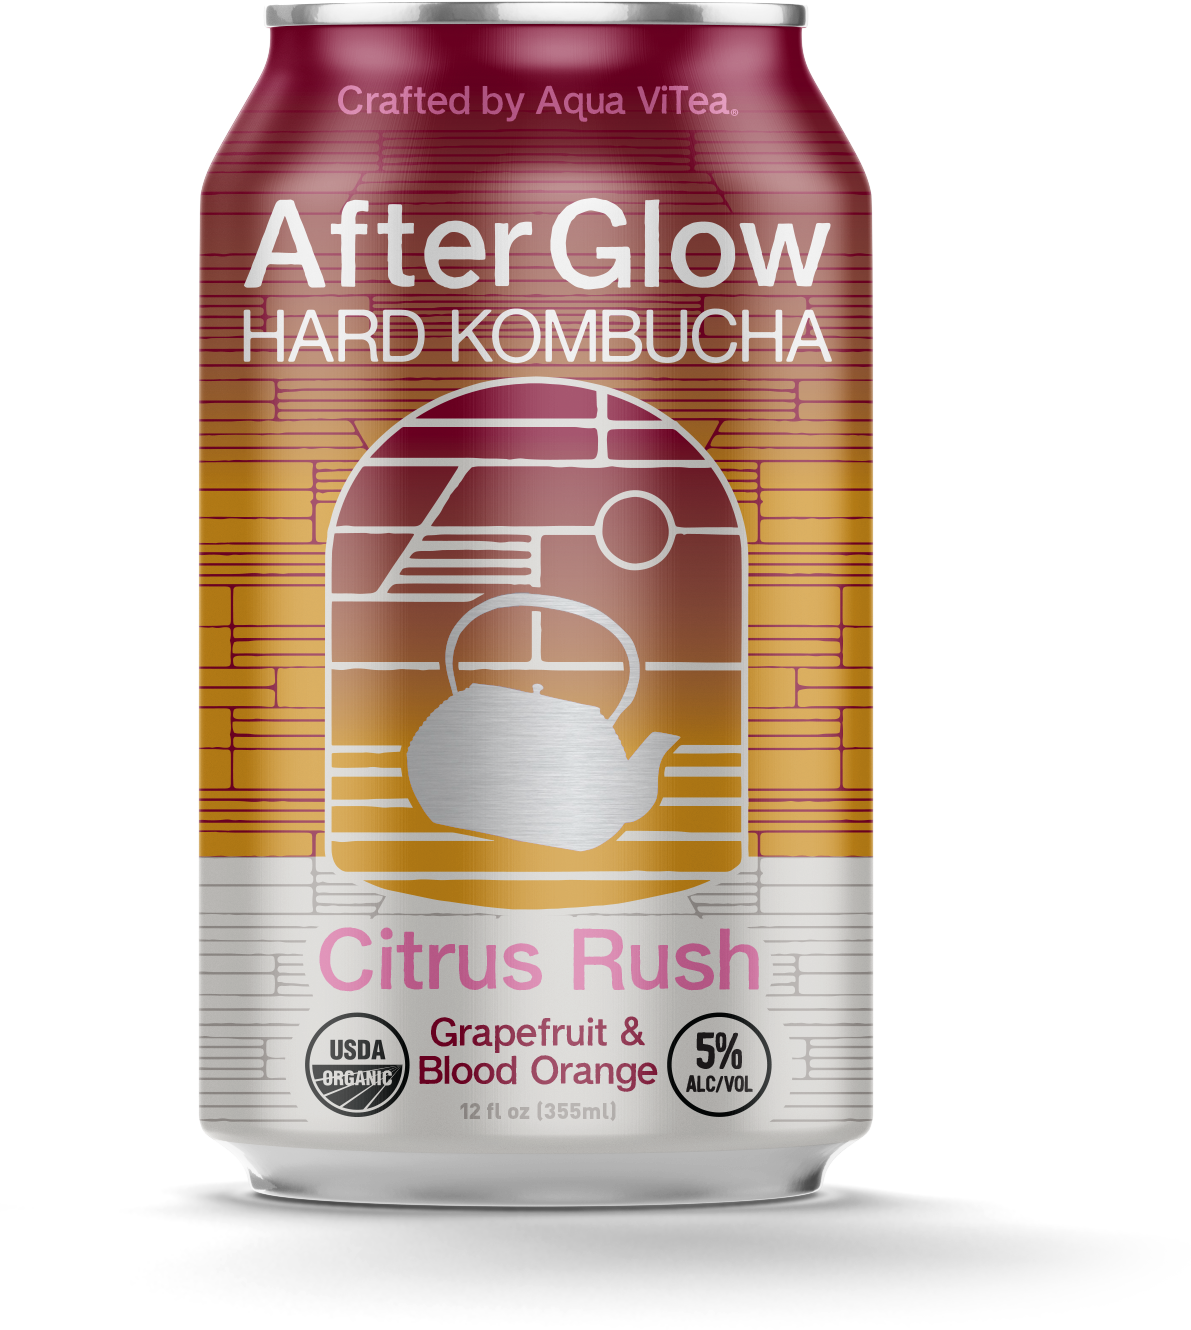 AfterGlow Hard Kombucha Citrus Rush